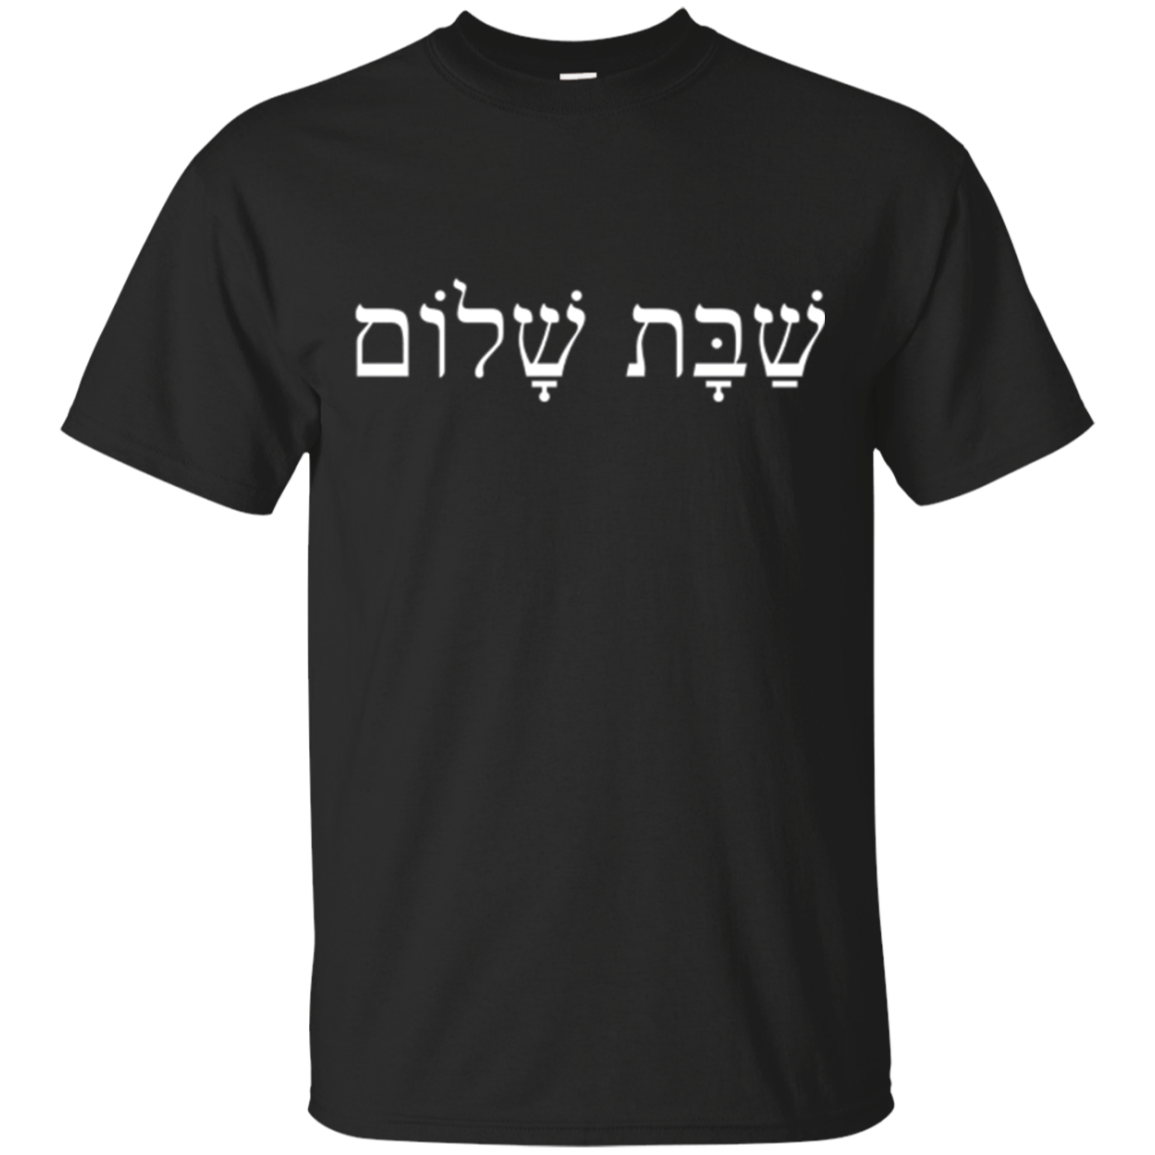 Hebrew Shabbat Shalom Greeting Jewish Shirt Men Women Kids